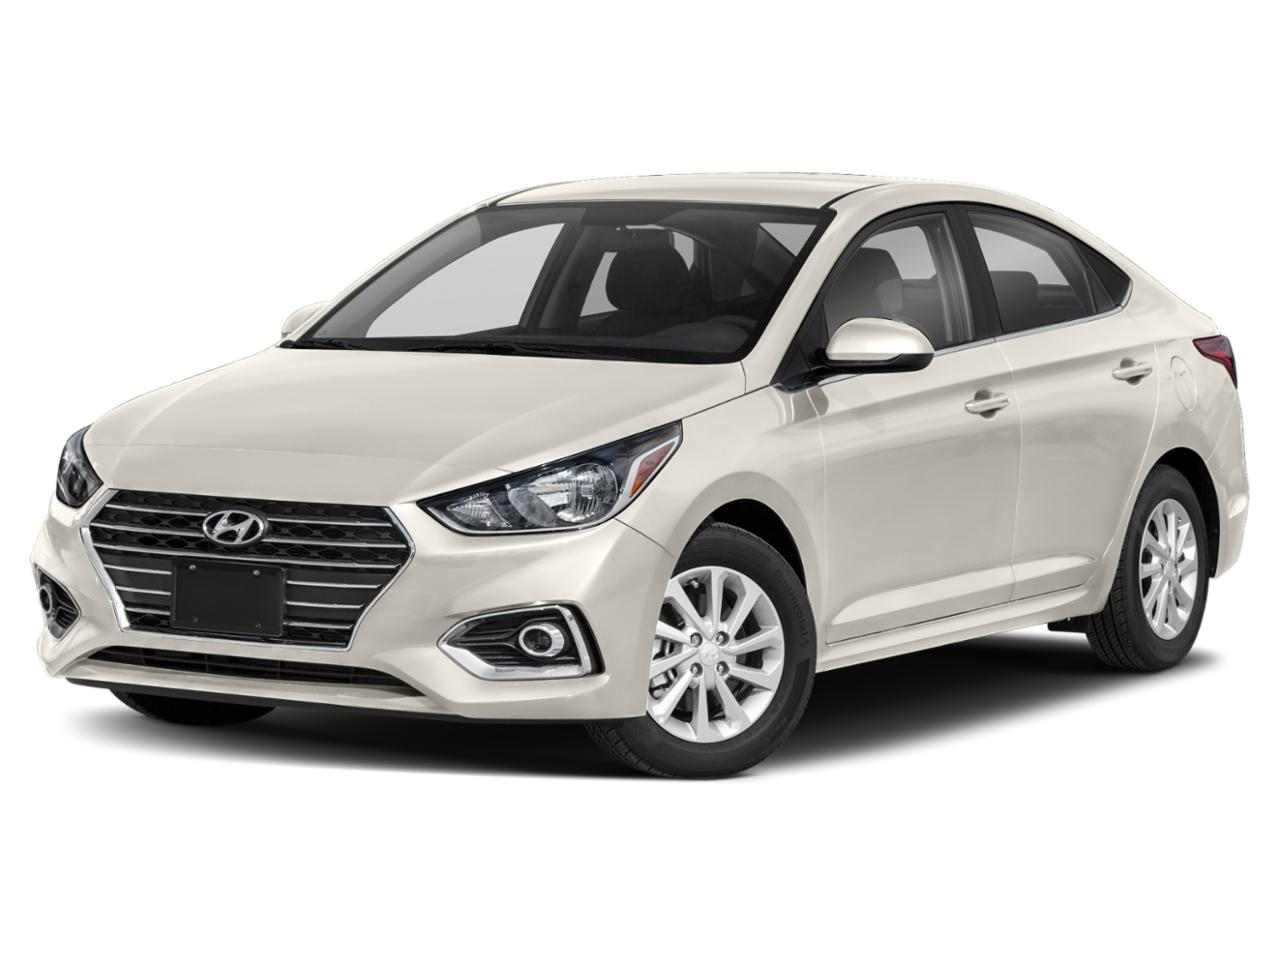 2021 Hyundai Accent Vehicle Photo in Peoria, IL 61615